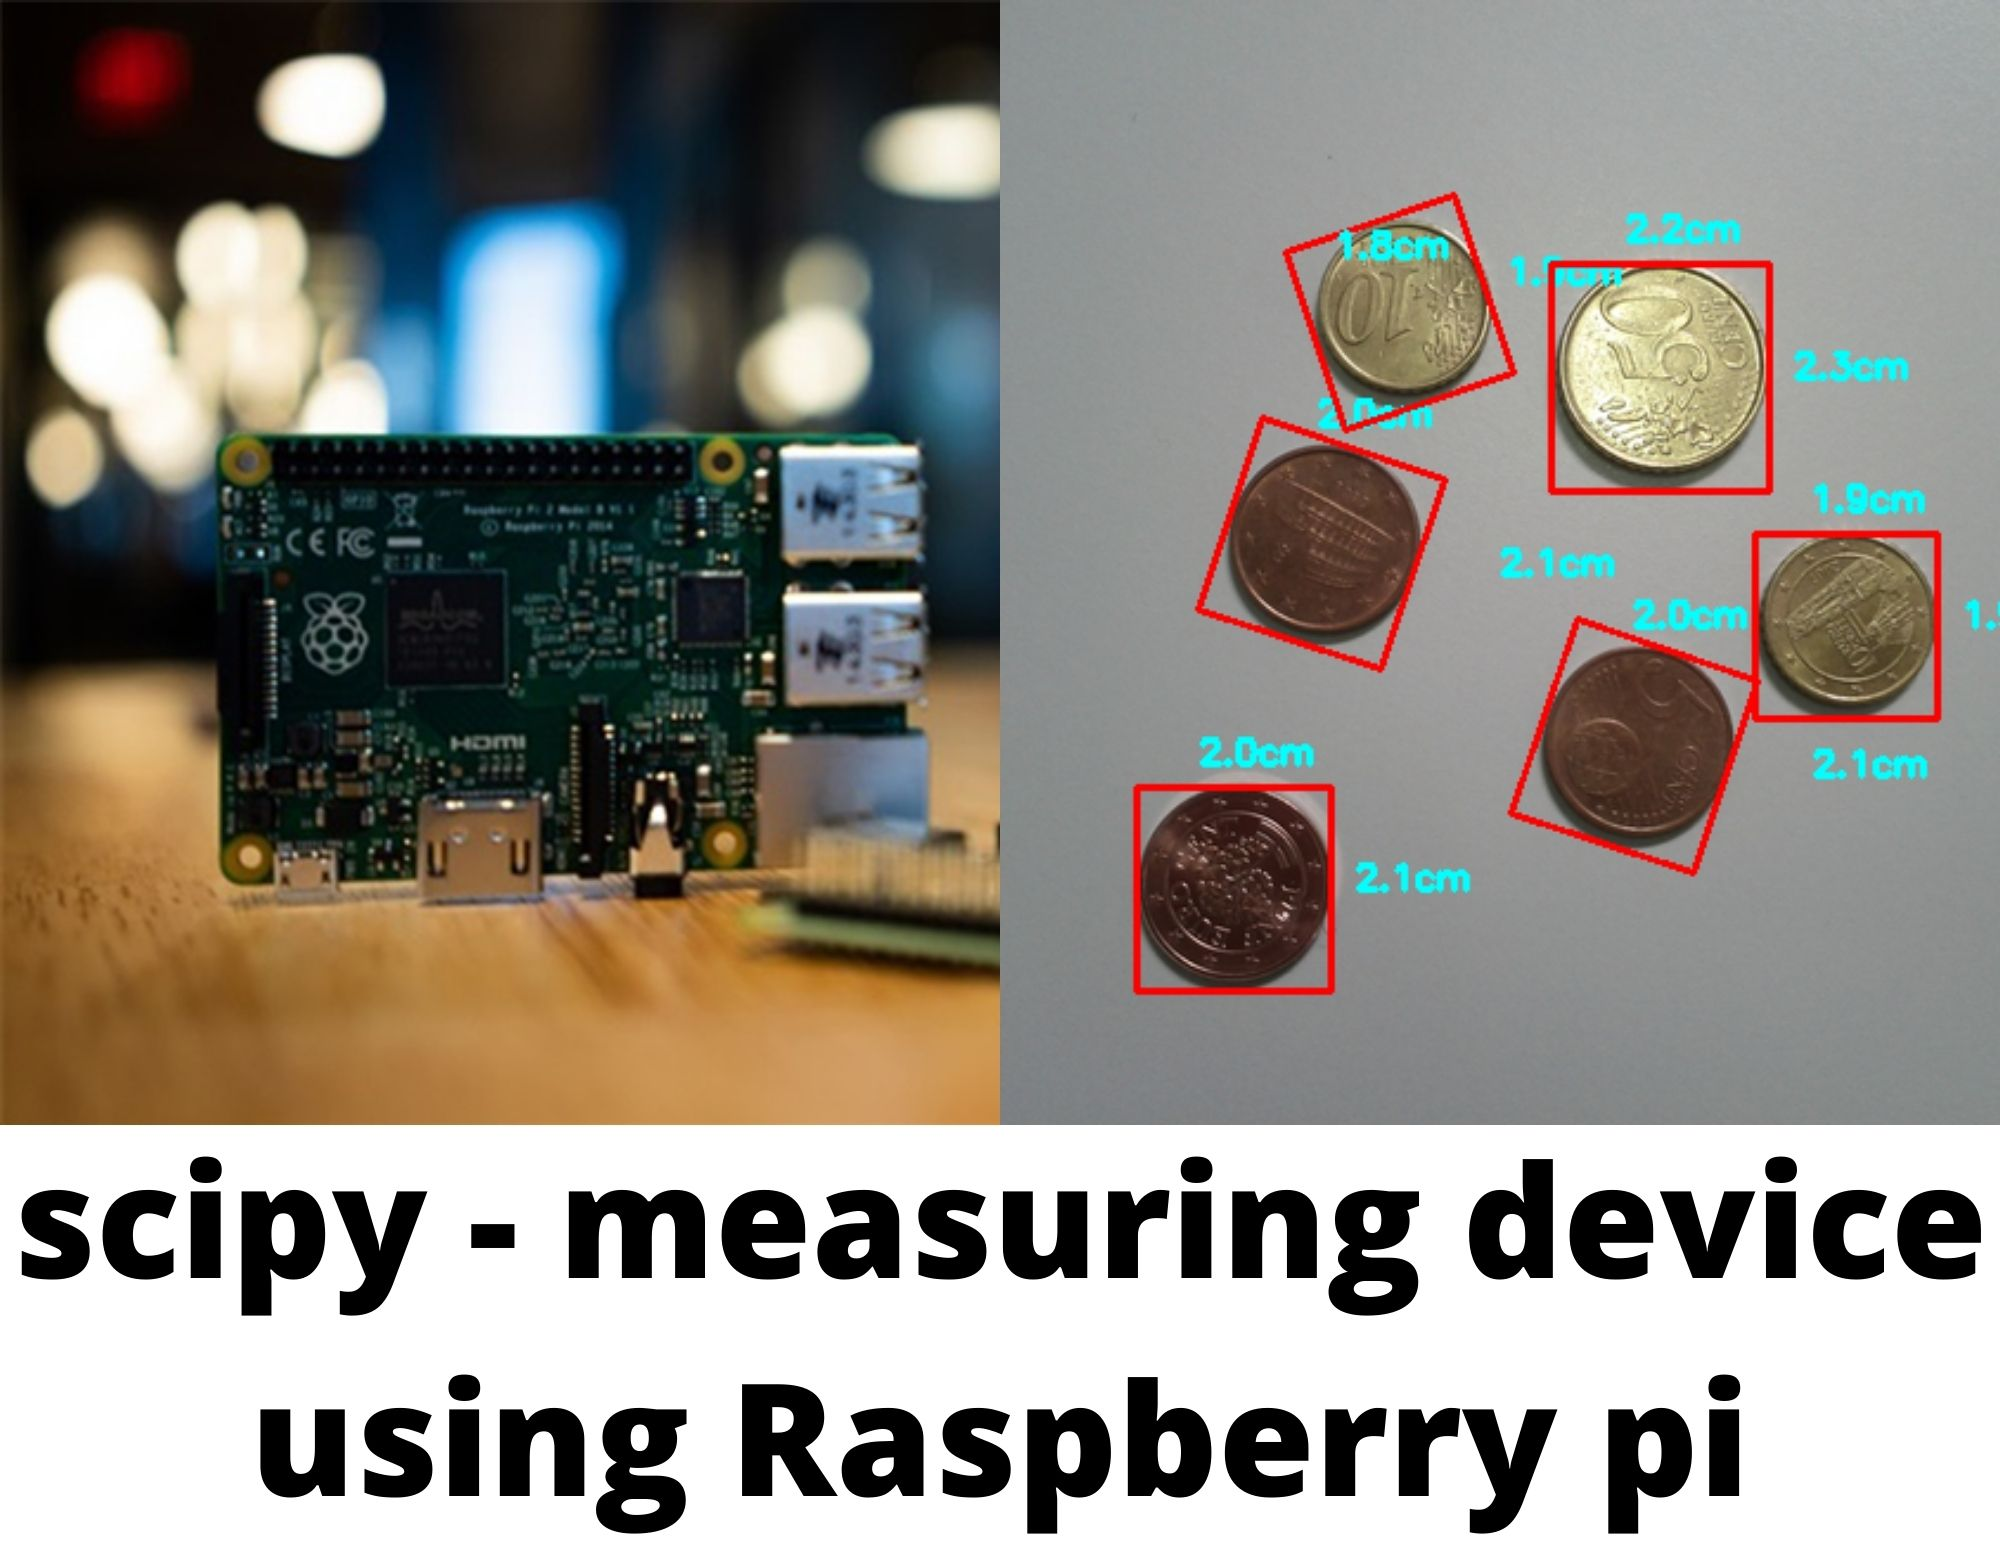 Measuring Device Using Scipy on Raspberry Pi